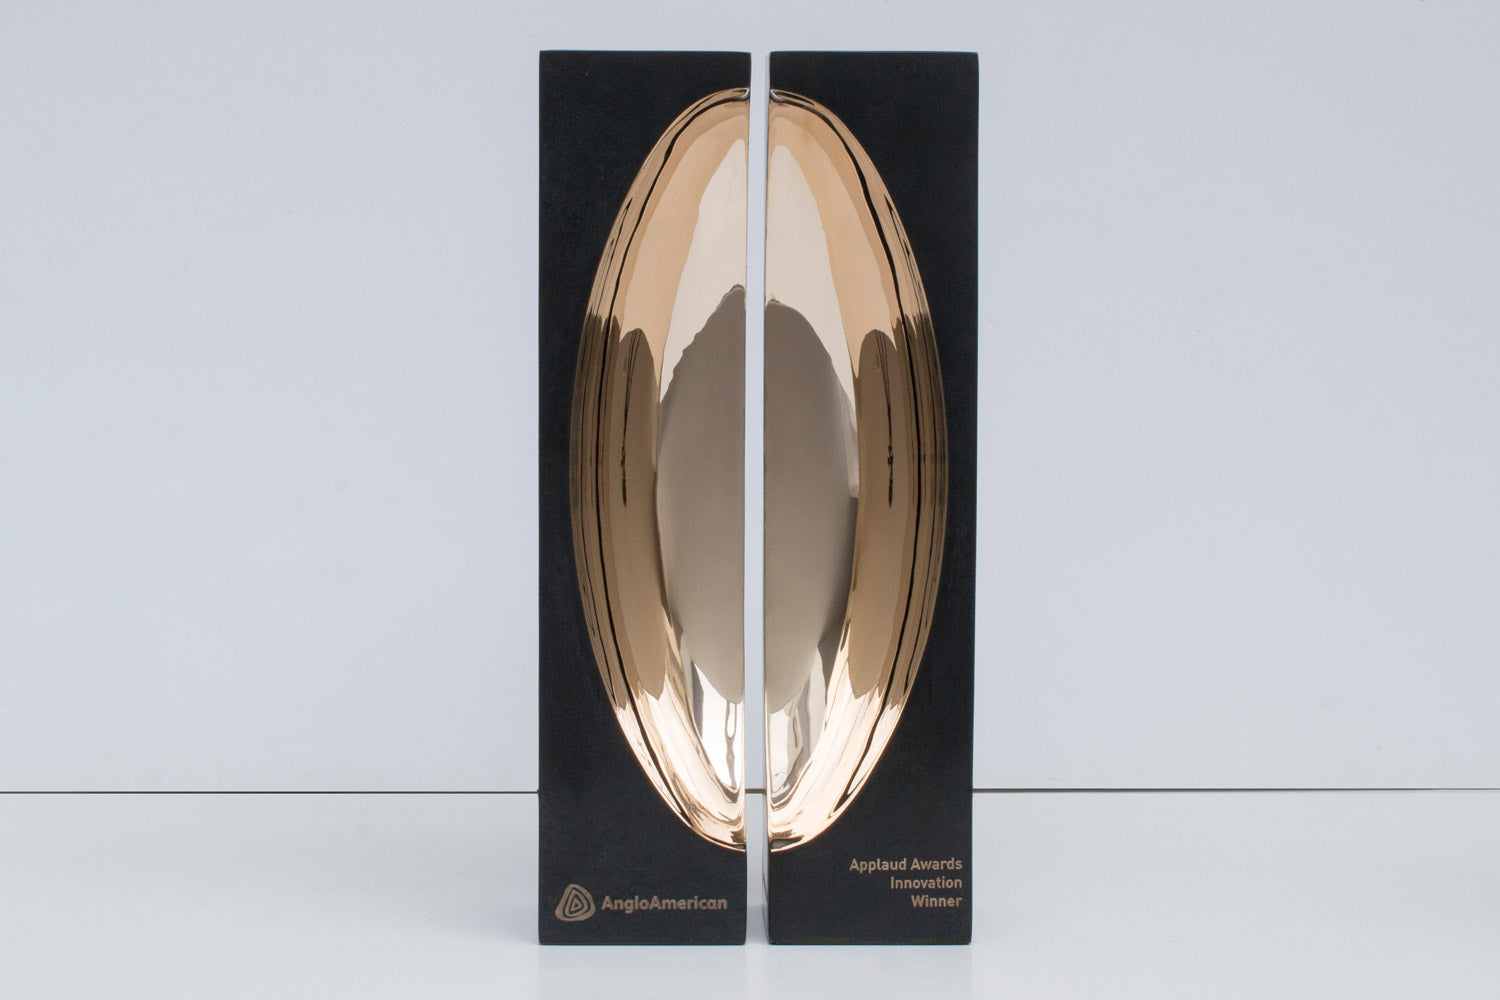 studio AMT | bronze casting | anglo american applaud awards